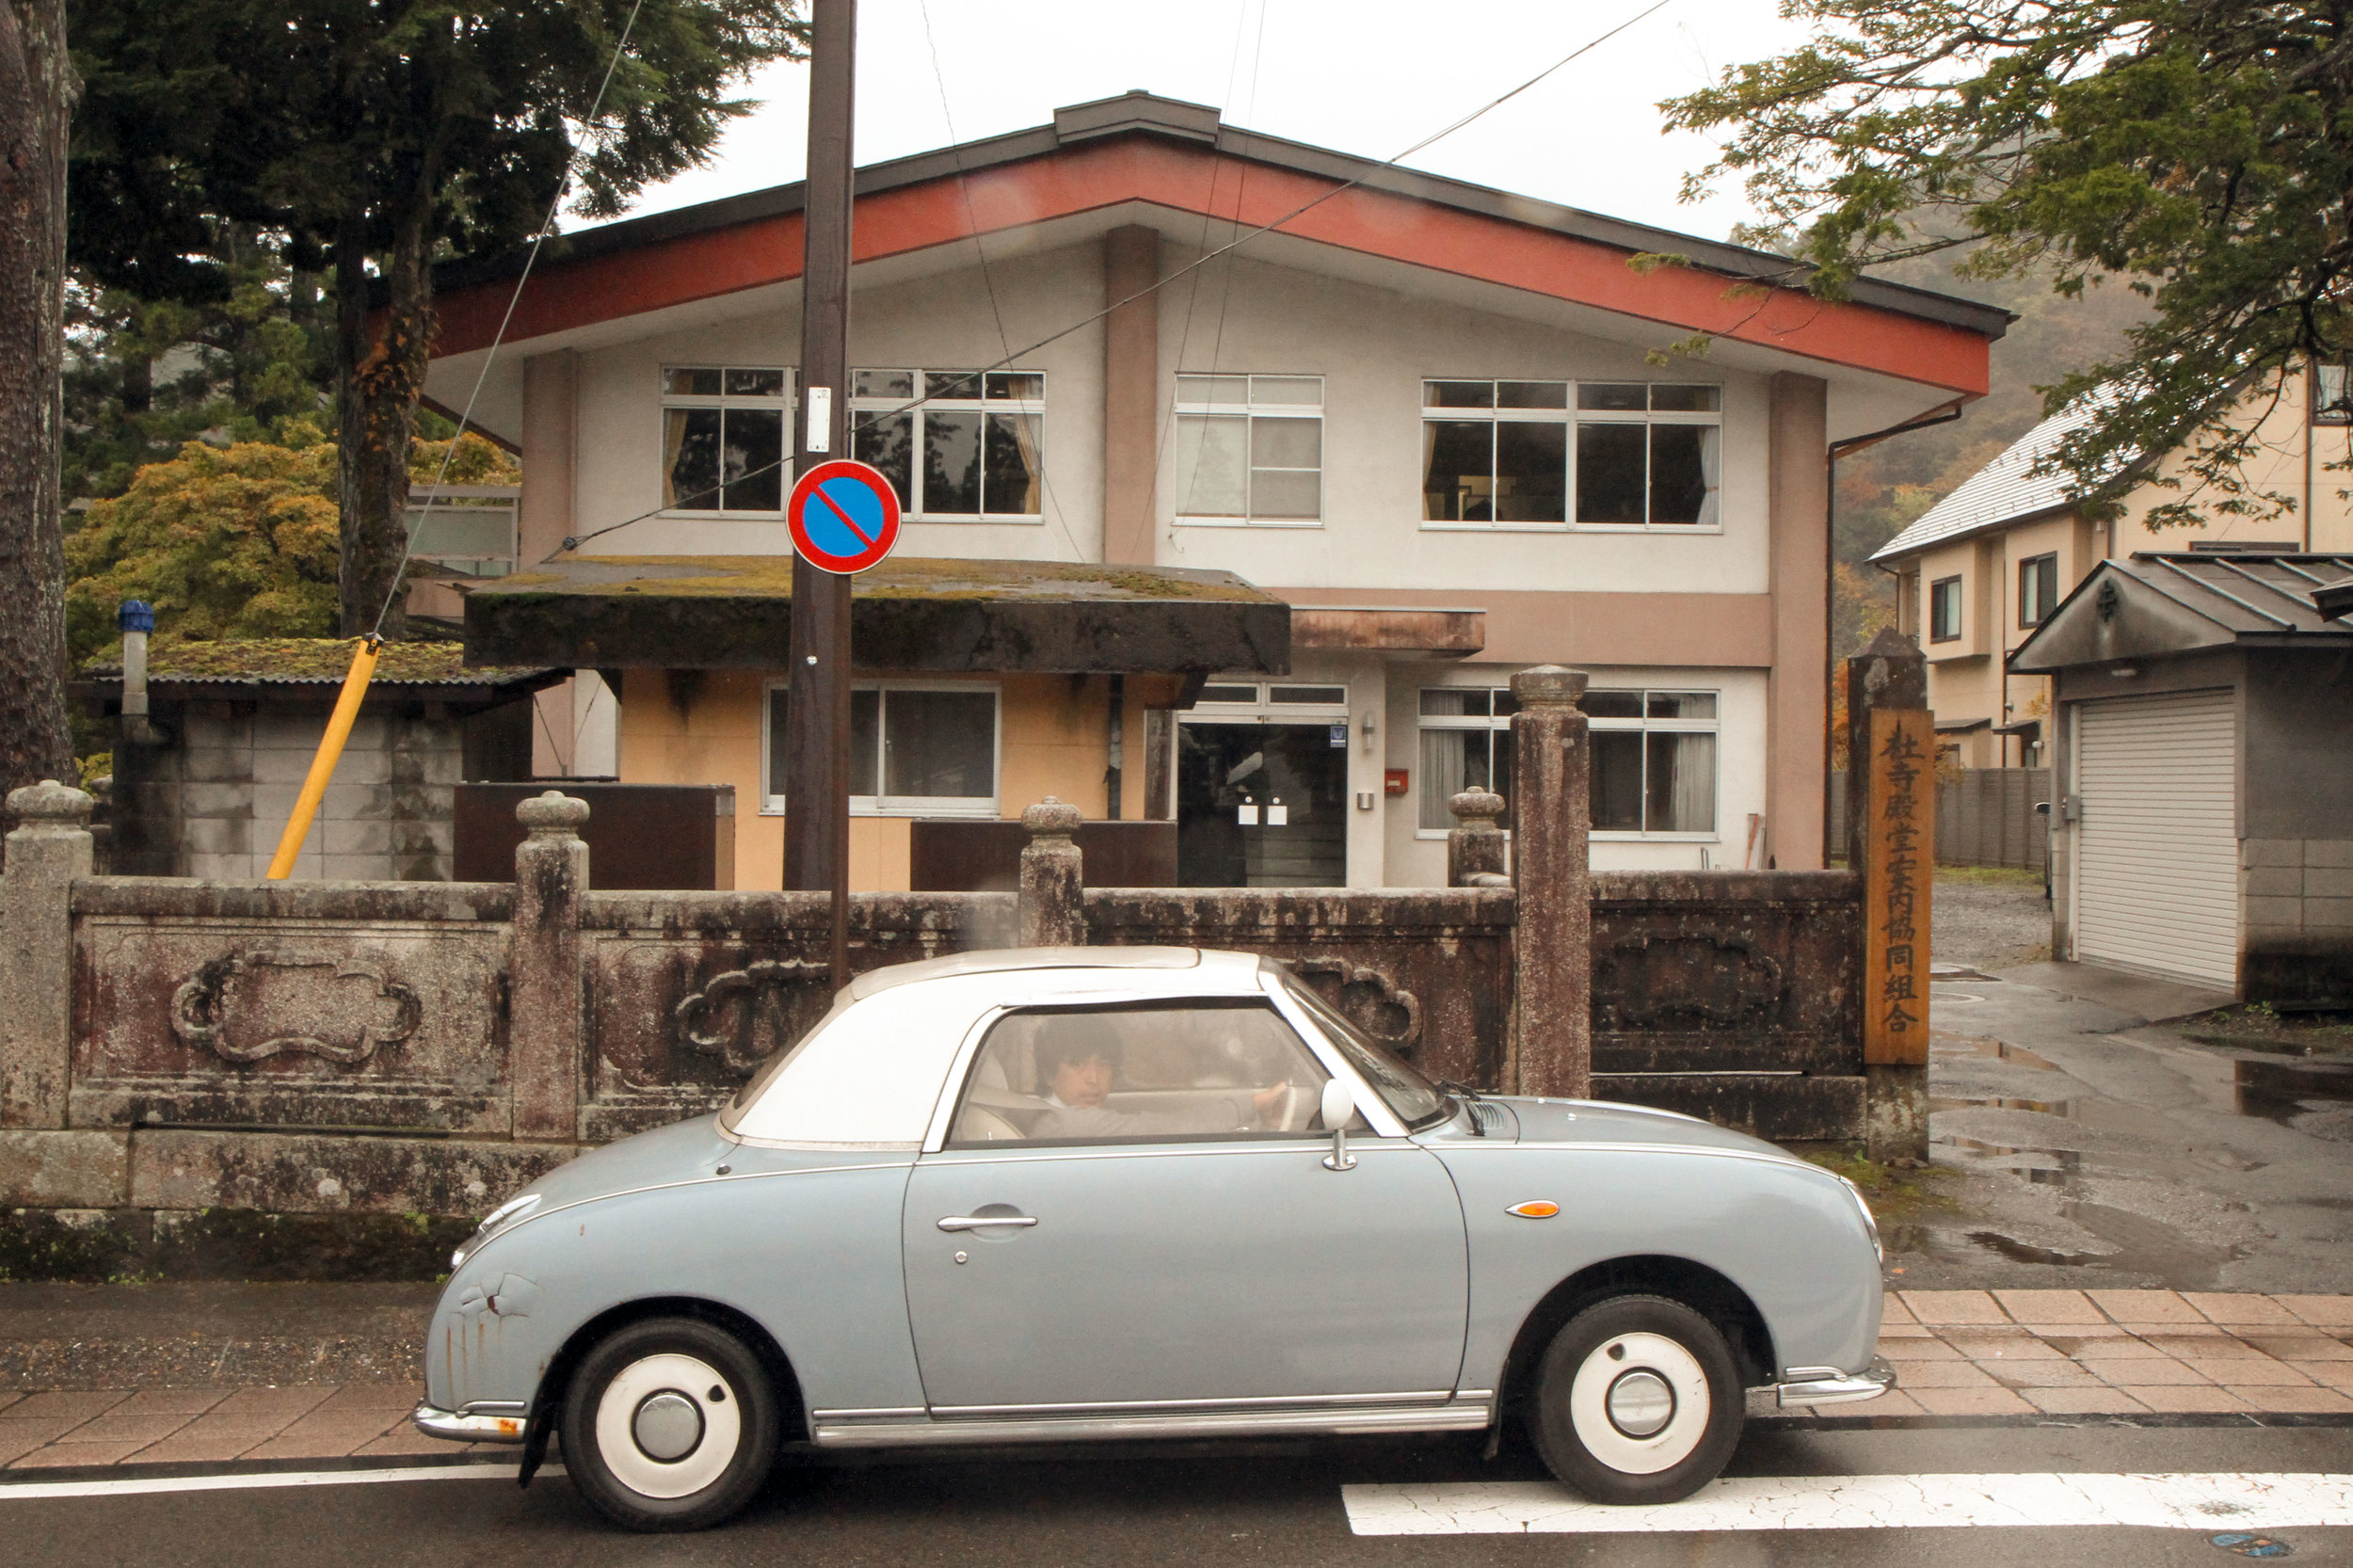 Tiny-Sportscar-in-front-of-House.jpg